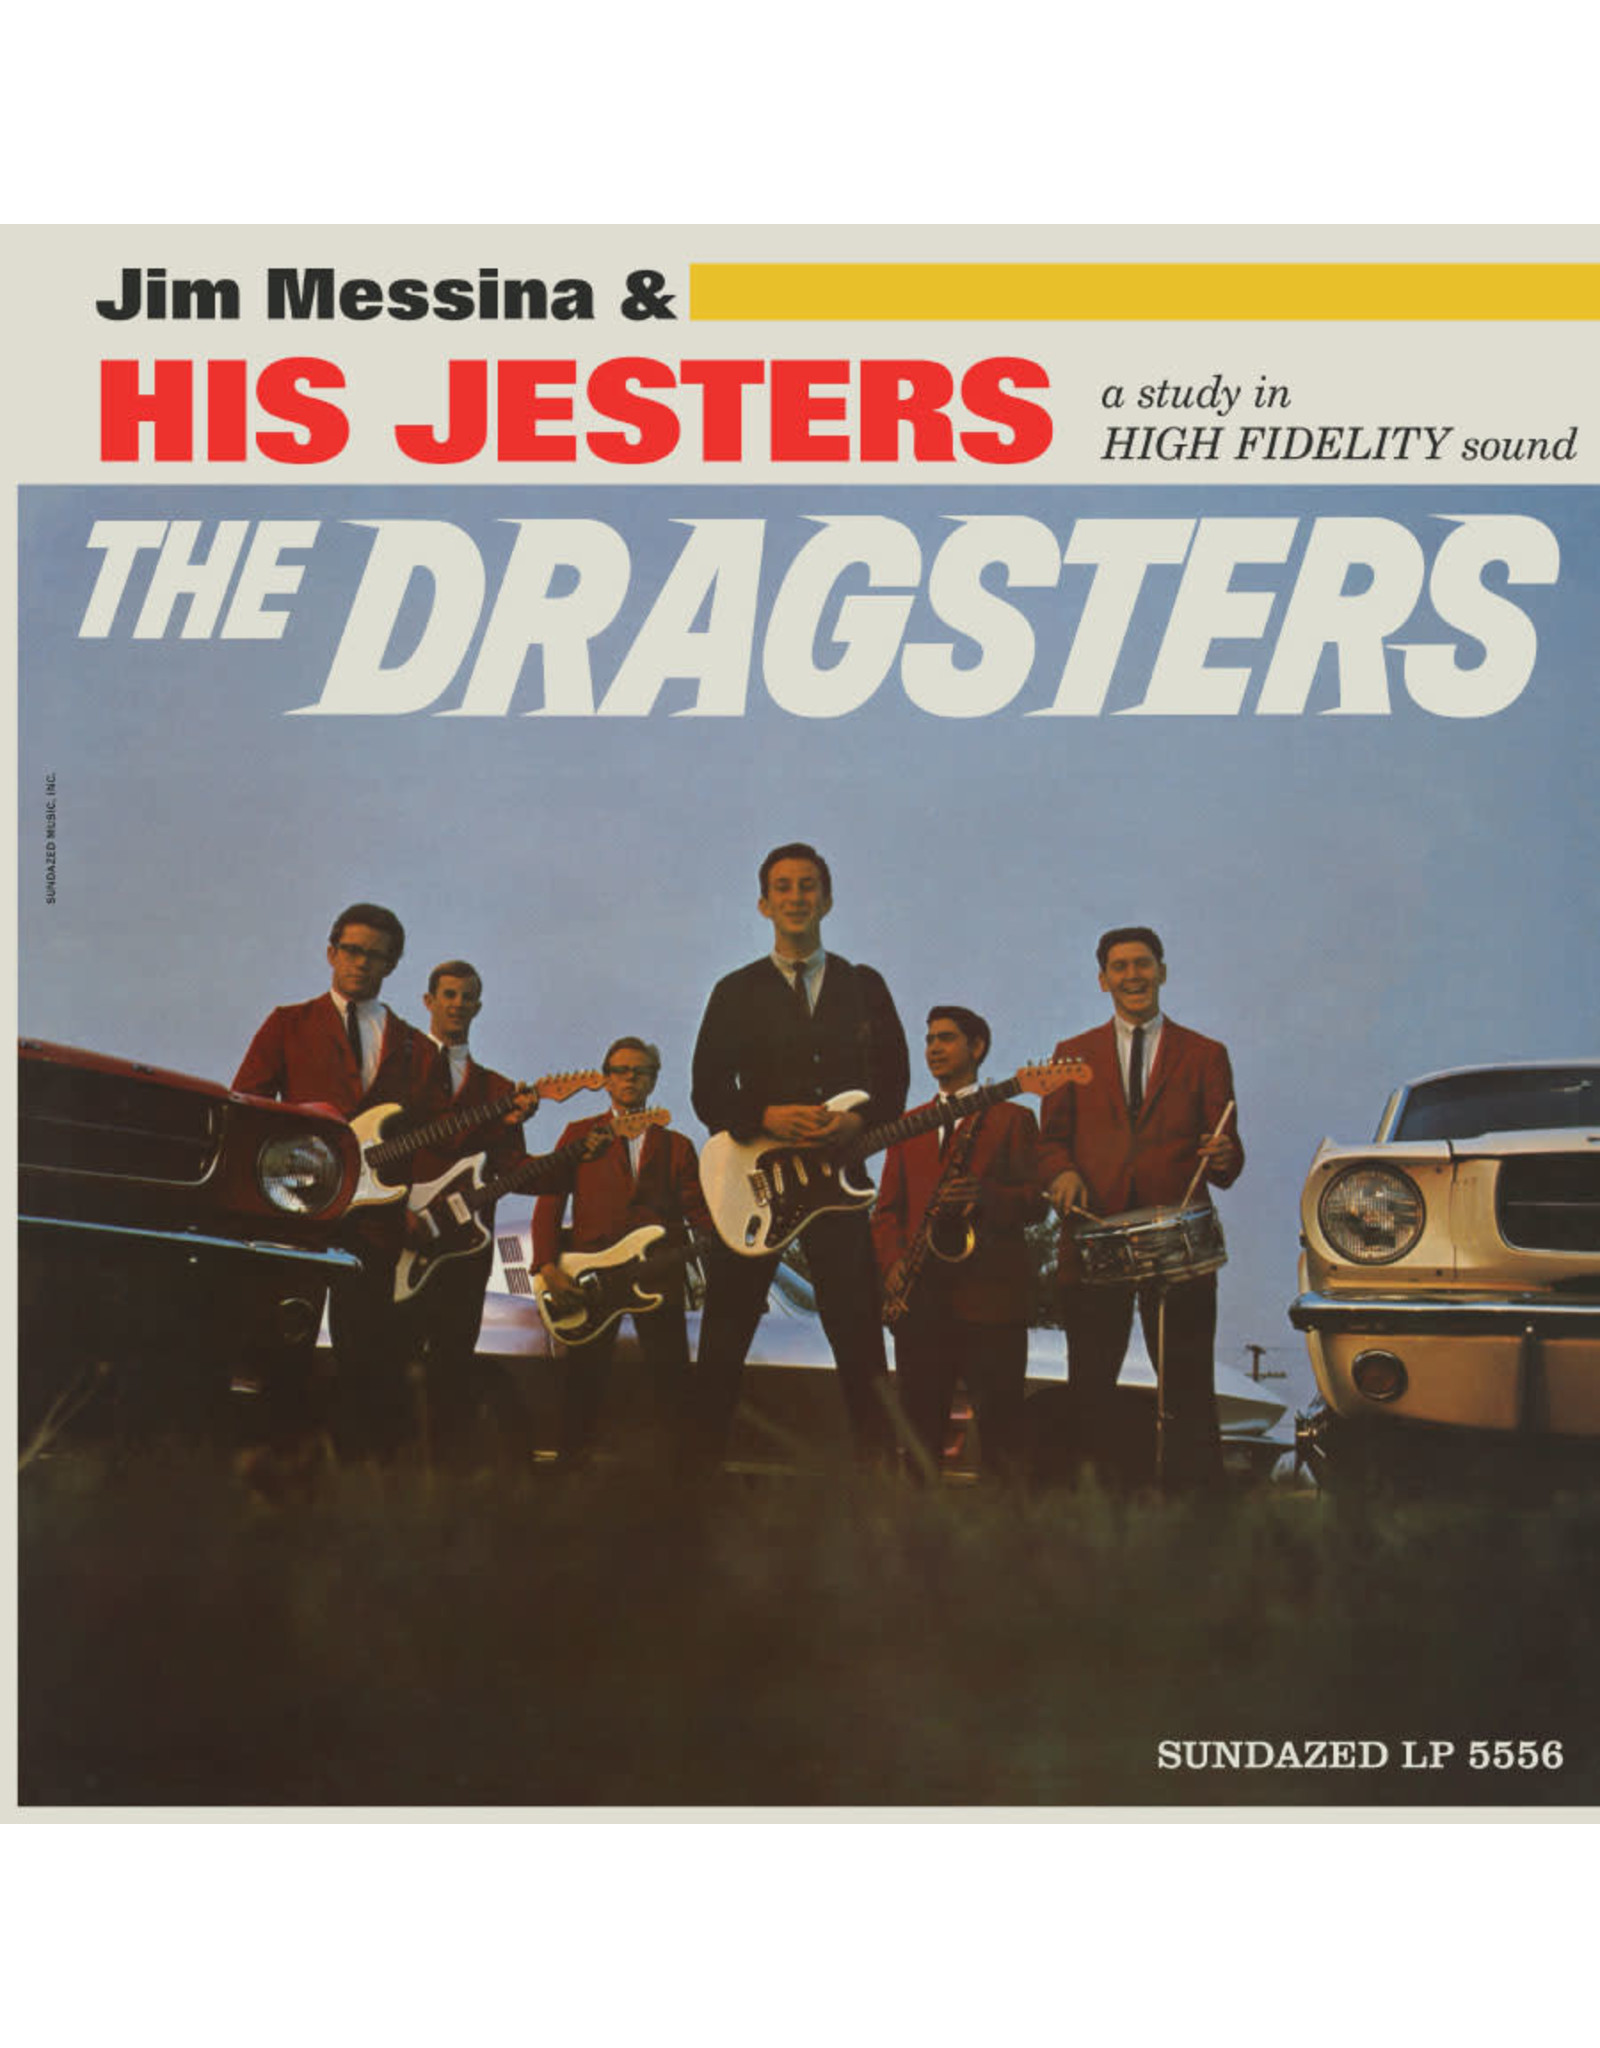 Messina, Jim & His Jesters -  The Dragsters LP (RSD '21 Exclusive)